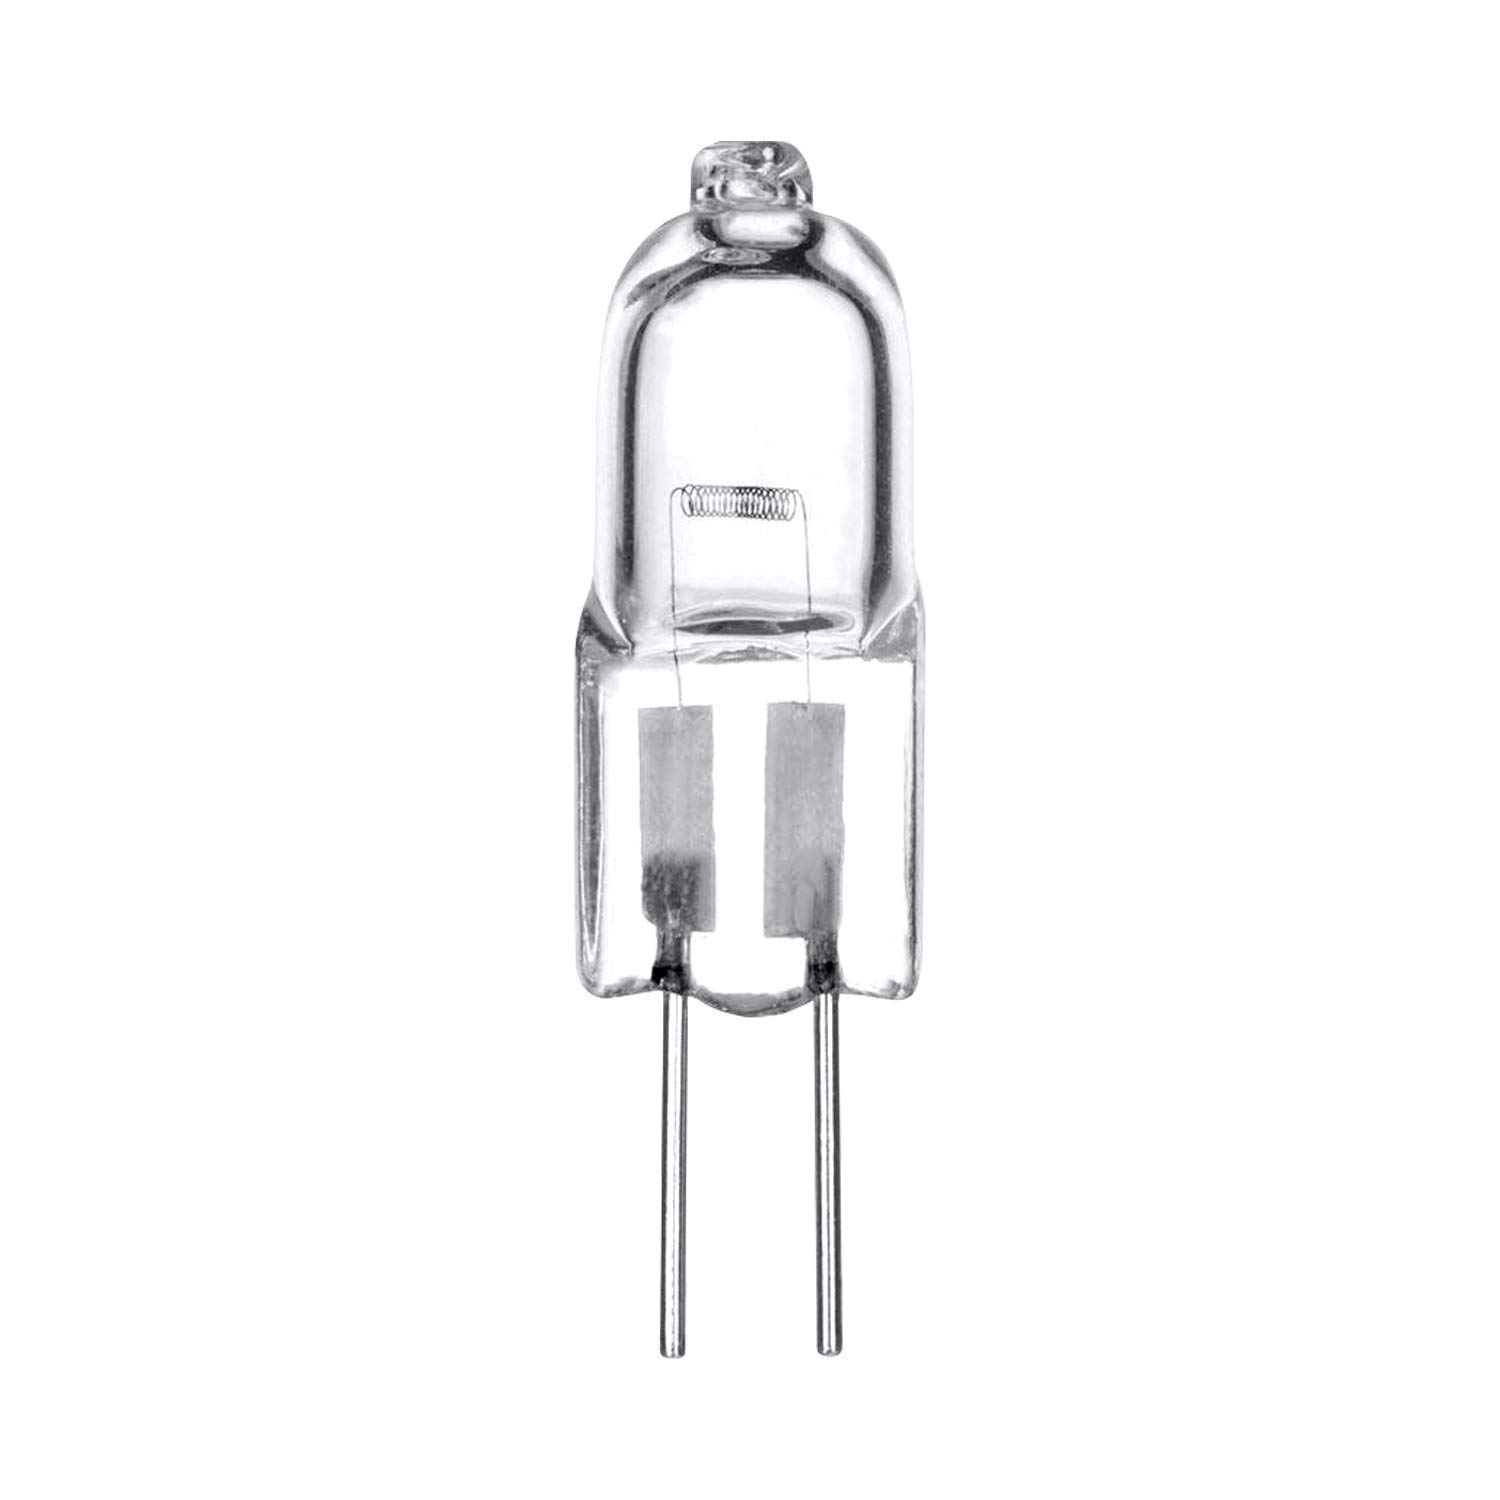 12 Volt Pack of 10 10//G4//CL//12V Clear 10 Watts Under Cabinet Puck Light Track Lighting Pyramid Bulbs G4 Bi-pin Base T3 JC Type Chandeliers Halogen Light Bulb Warm White 2700K Dimmable for Accent Lights